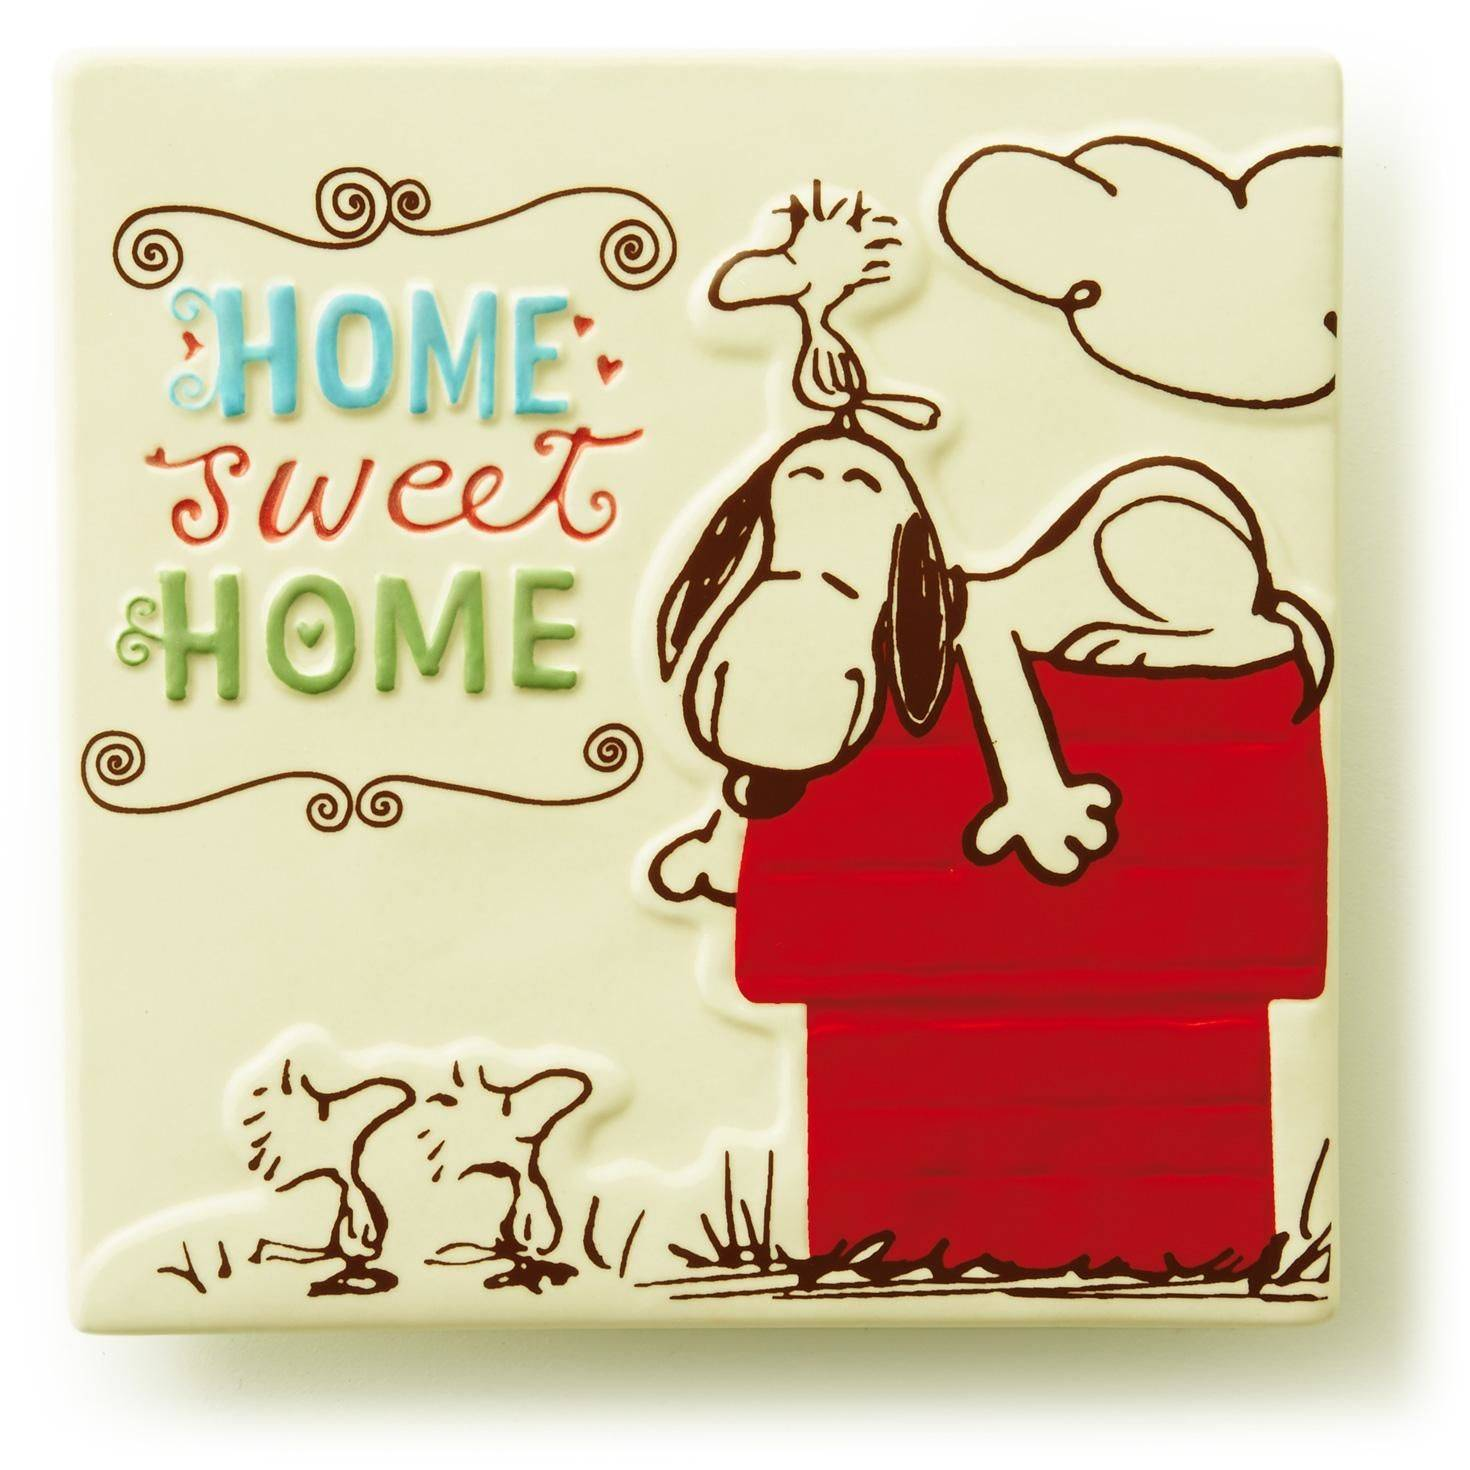 Home sweet home photo